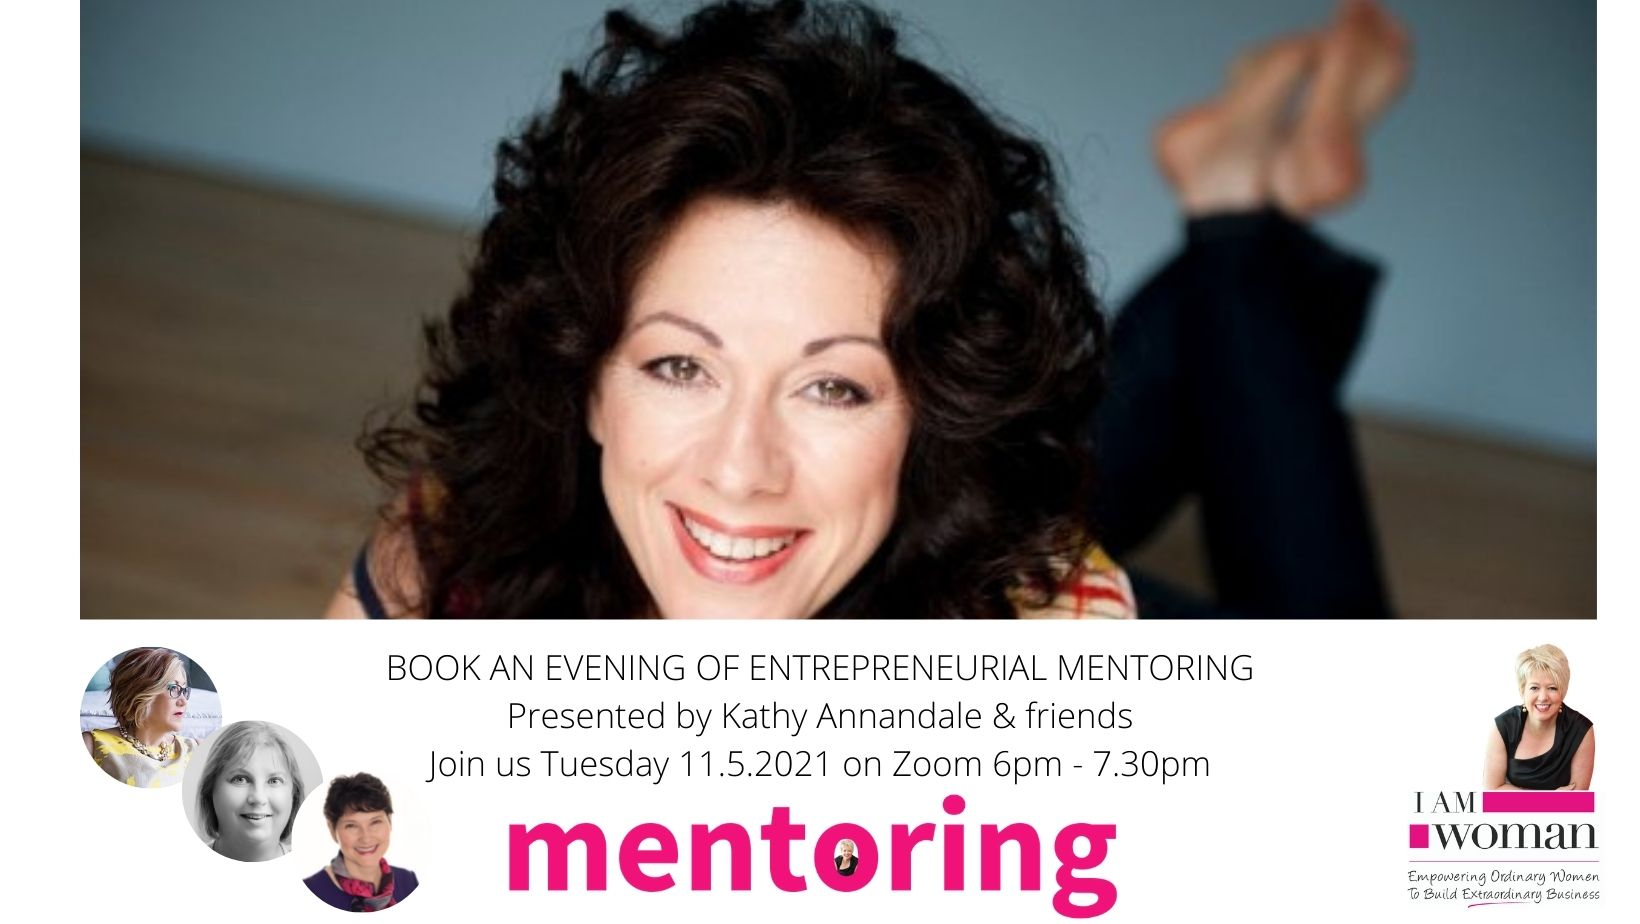 BOOK AN EVENING OF ENTREPRENEURIAL MENTORING Presented by Kathy Annandale & friends Join us Tuesday 11.5.2021 on Zoom 6pm - 7.30pm